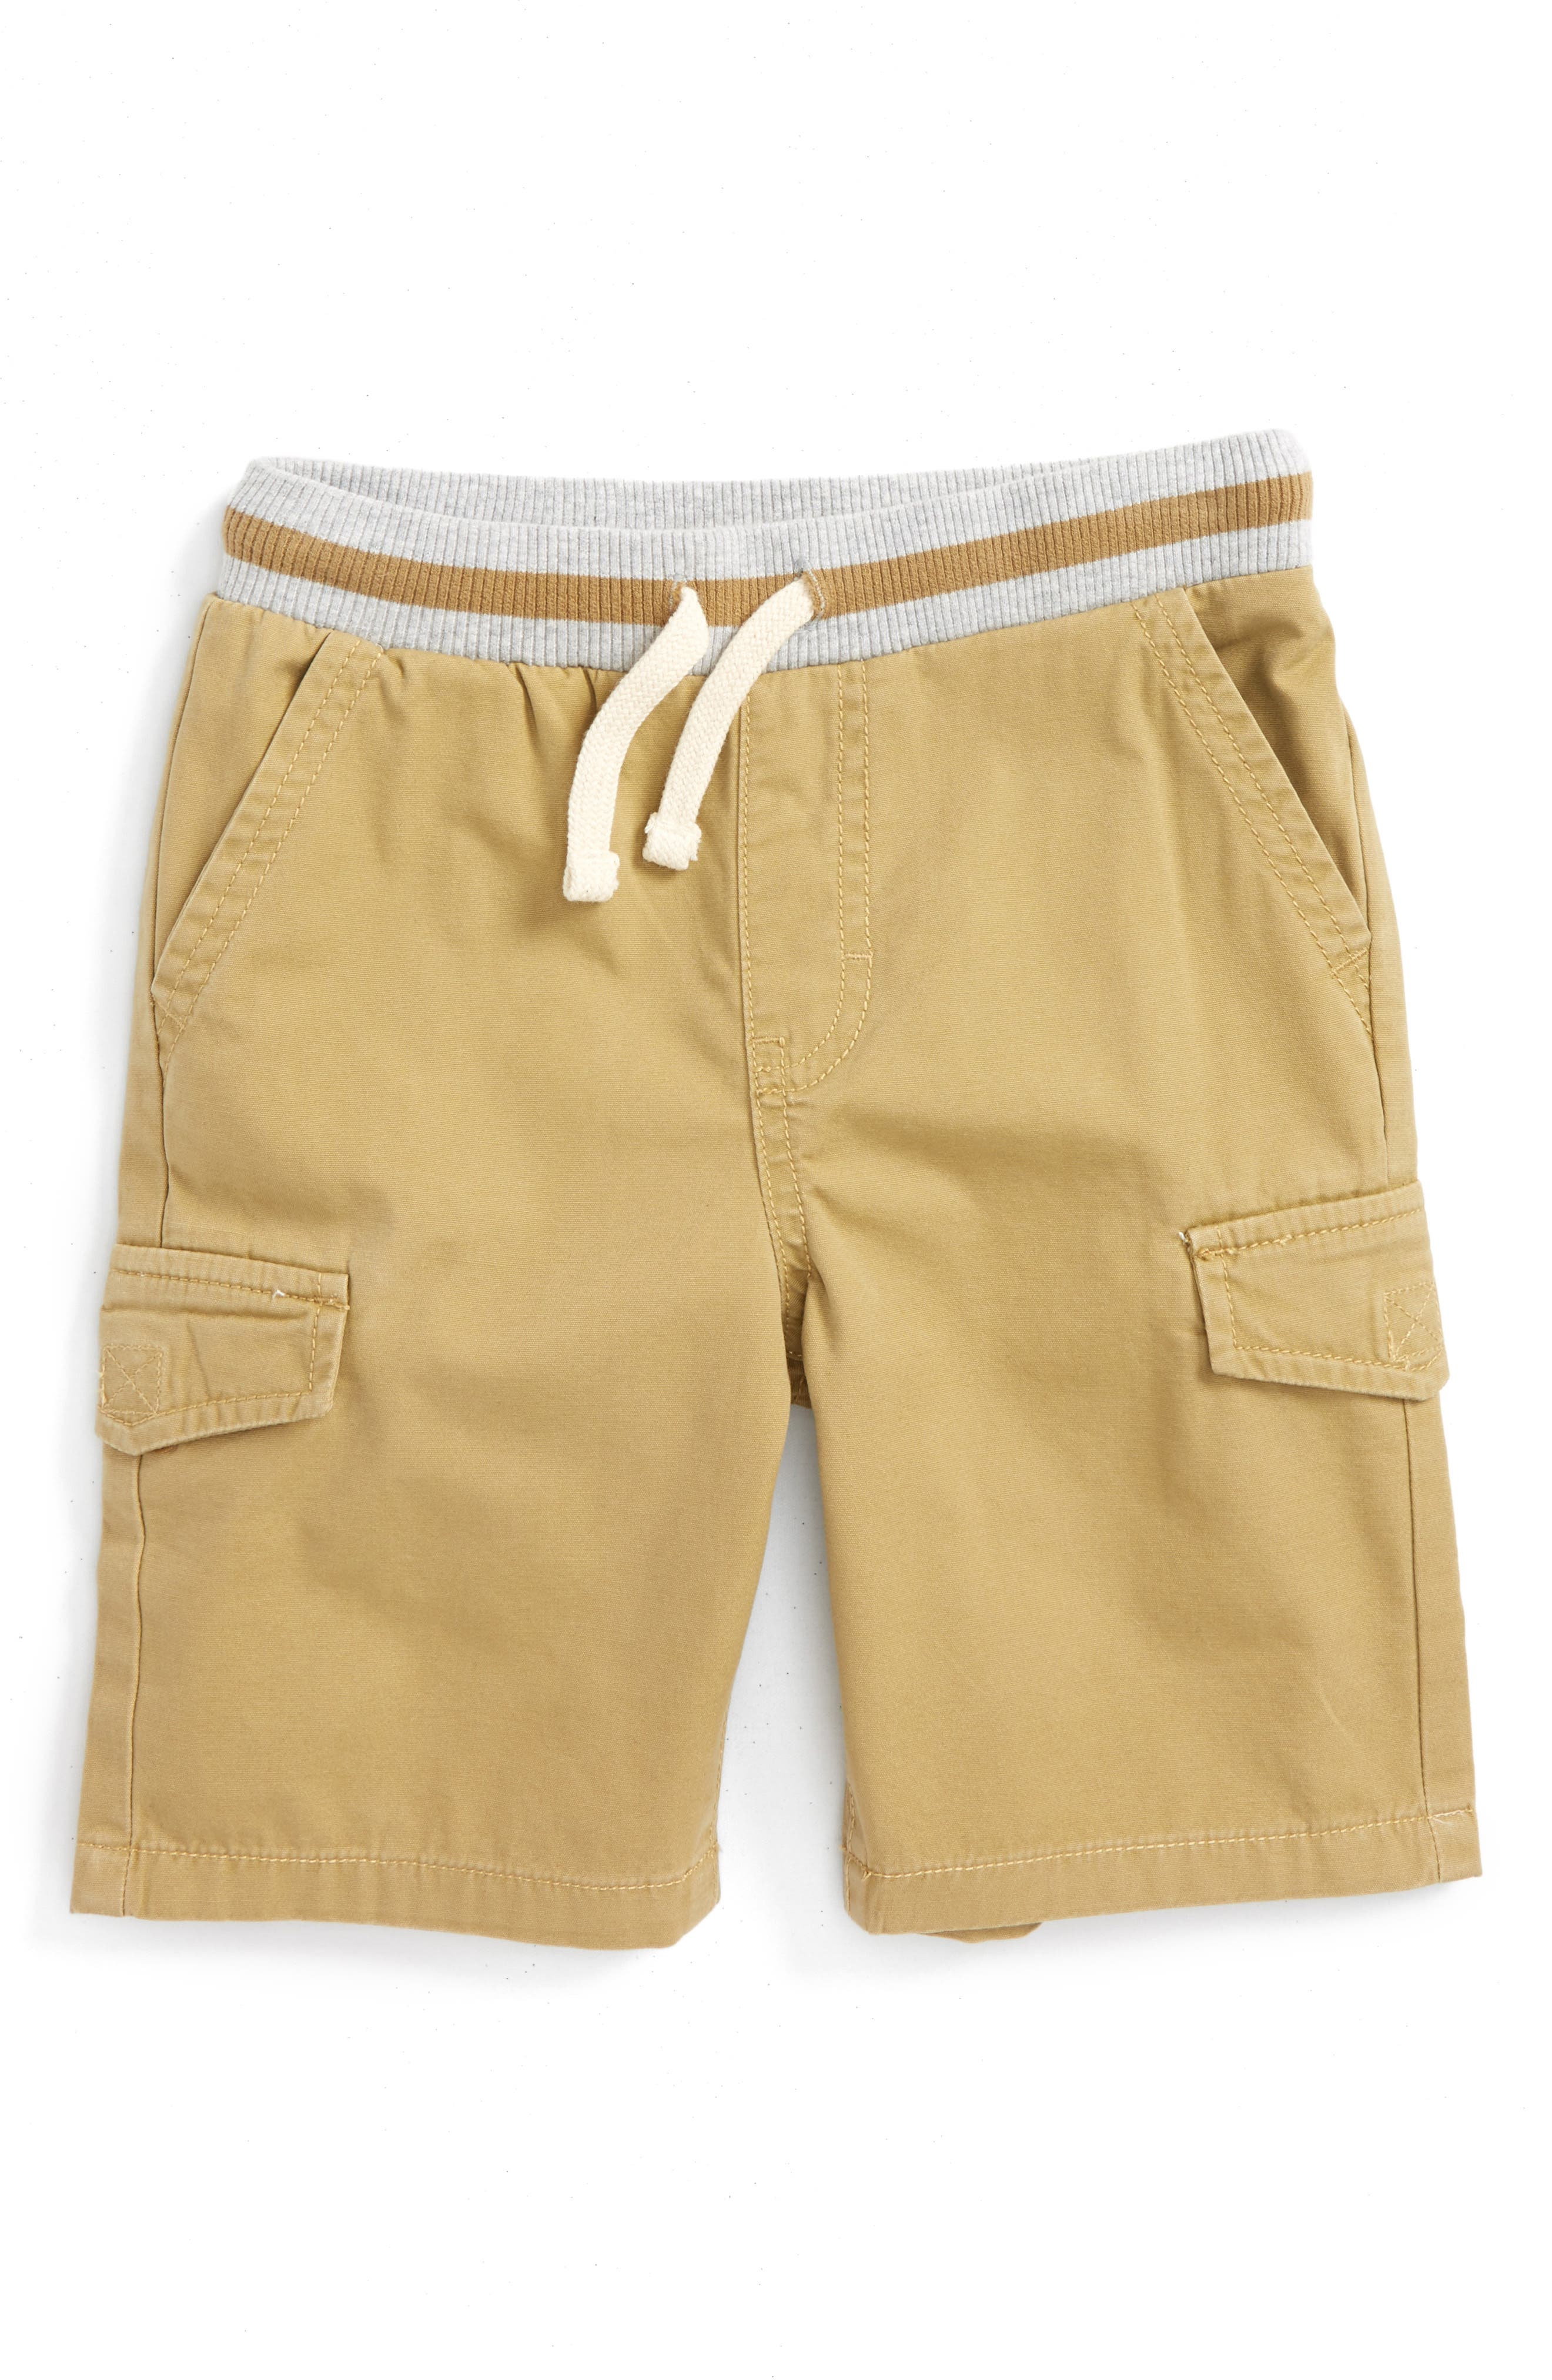 Main Image - Tucker + Tate Ribbed Waist Utility Shorts (Toddler Boys & Little Boys)